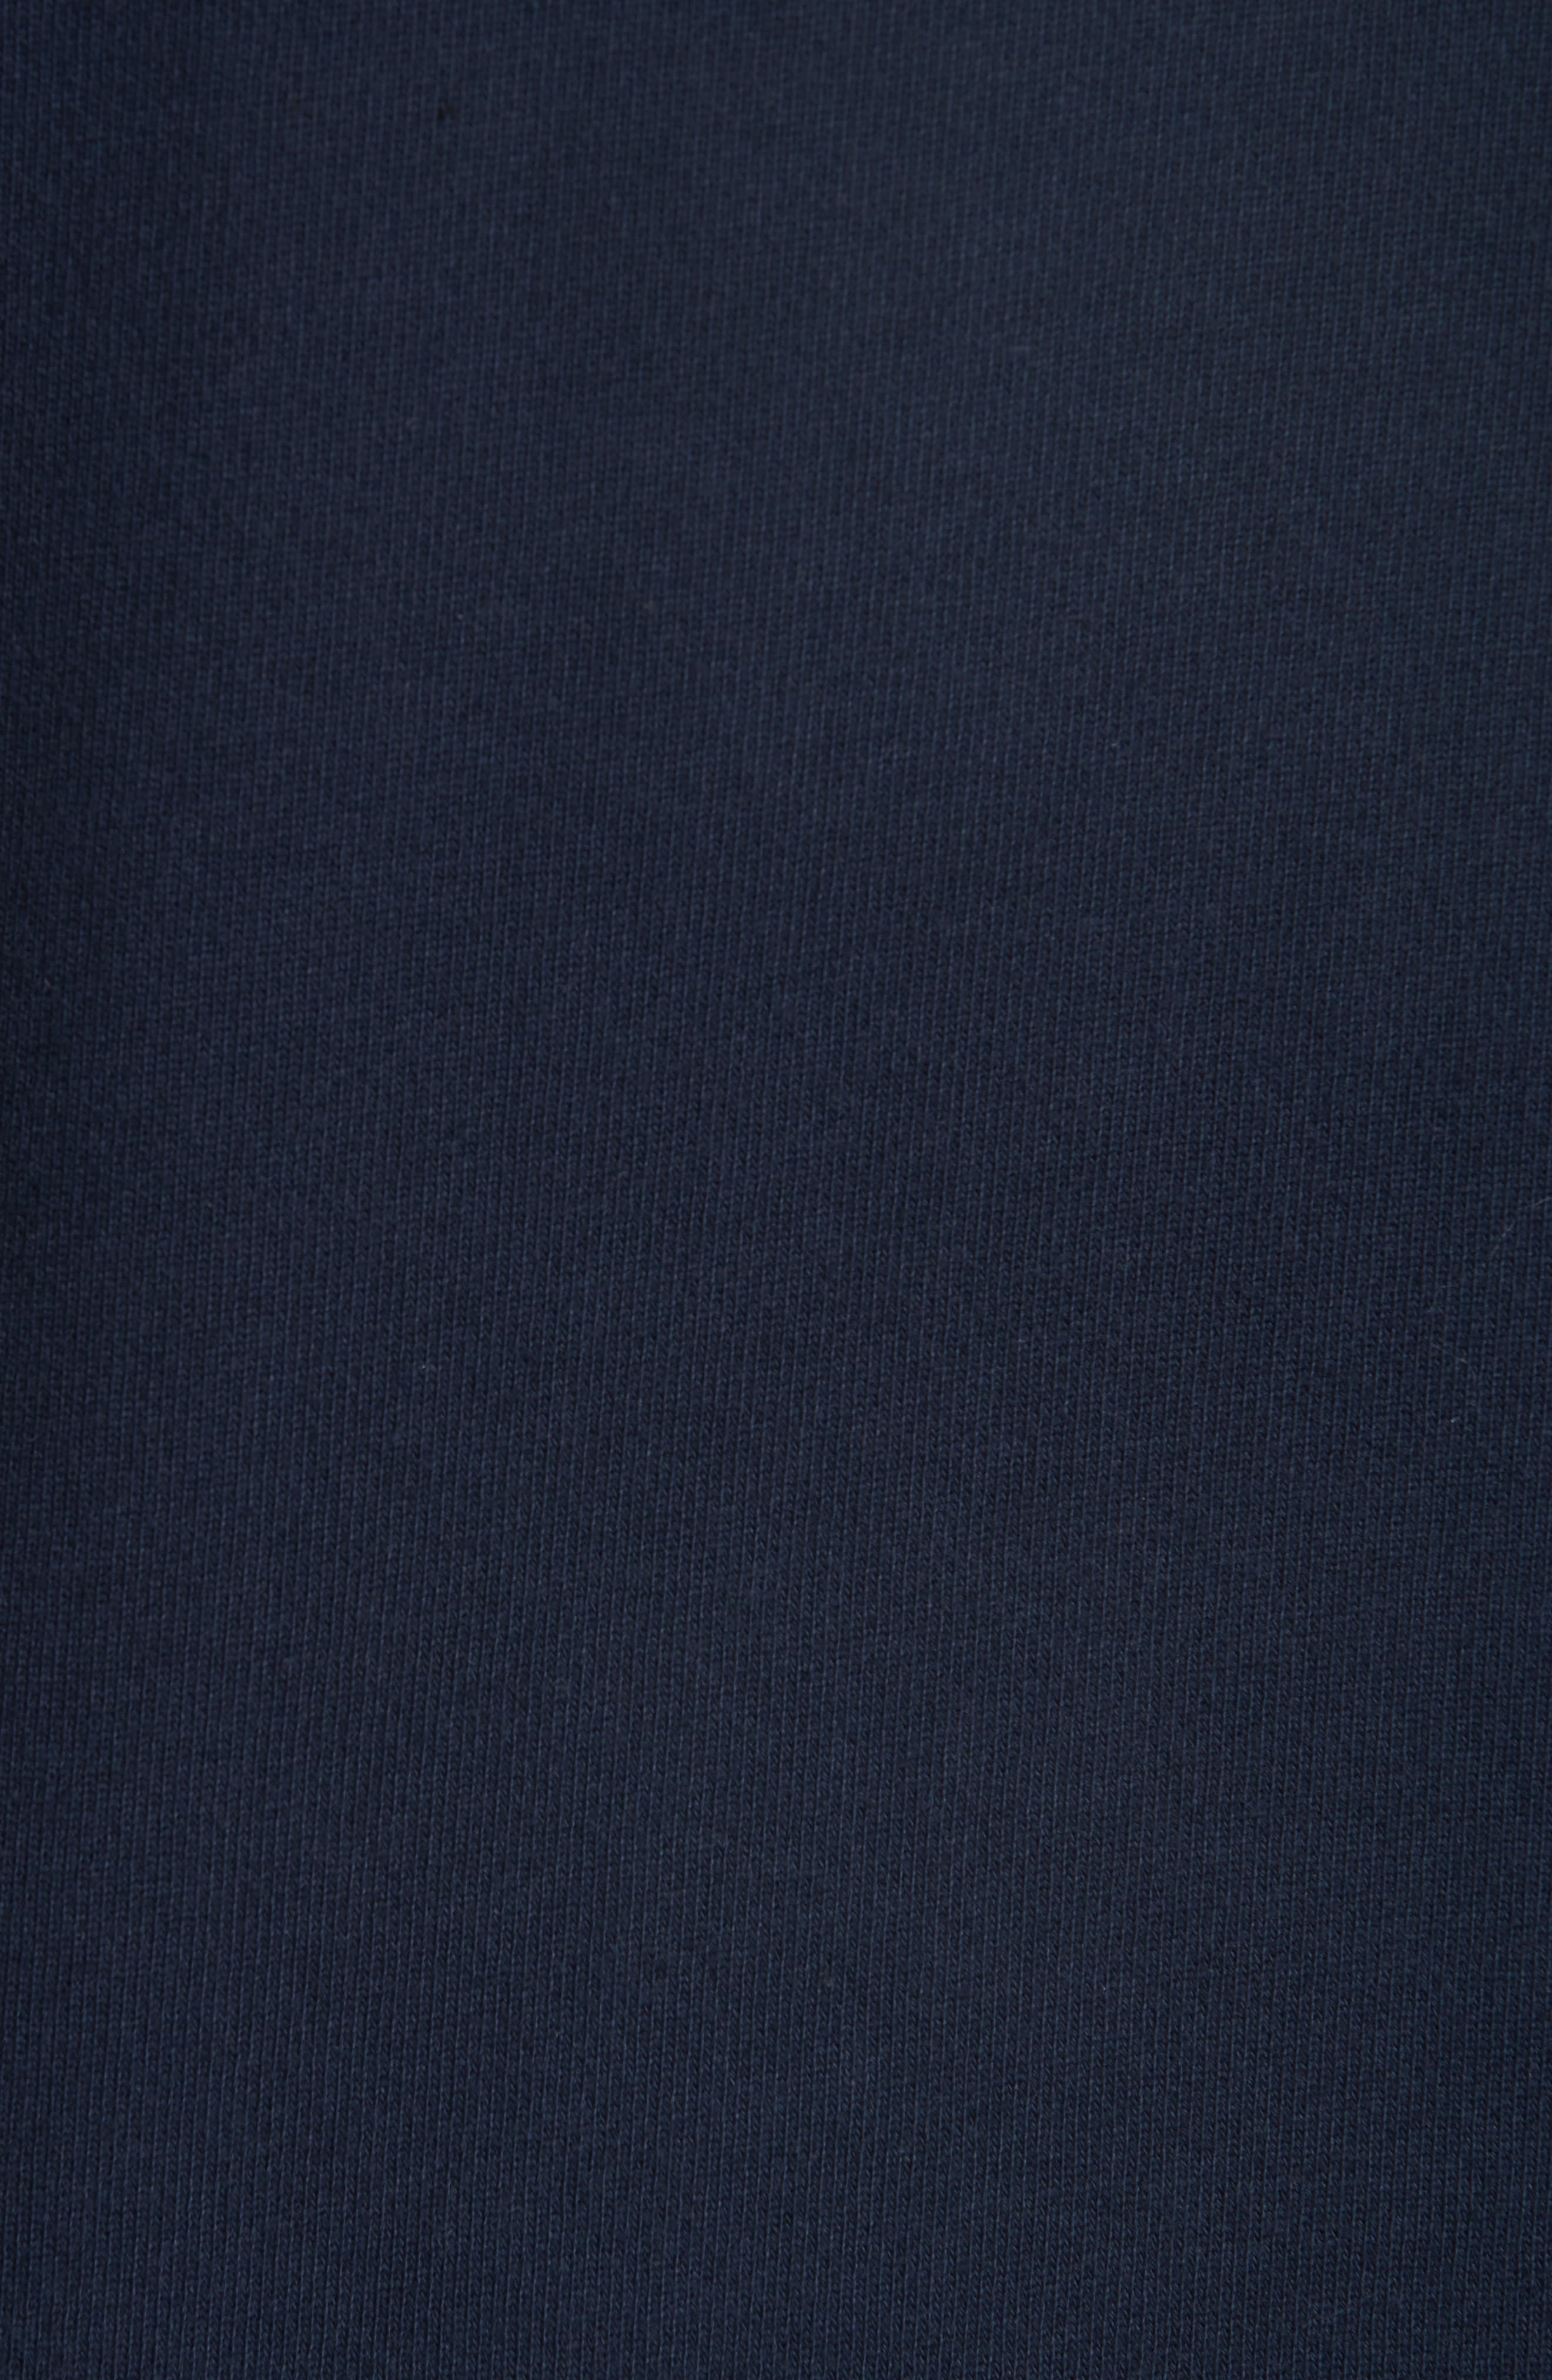 New Logo Crewneck Sweatshirt,                             Alternate thumbnail 5, color,                             IAK NAVY